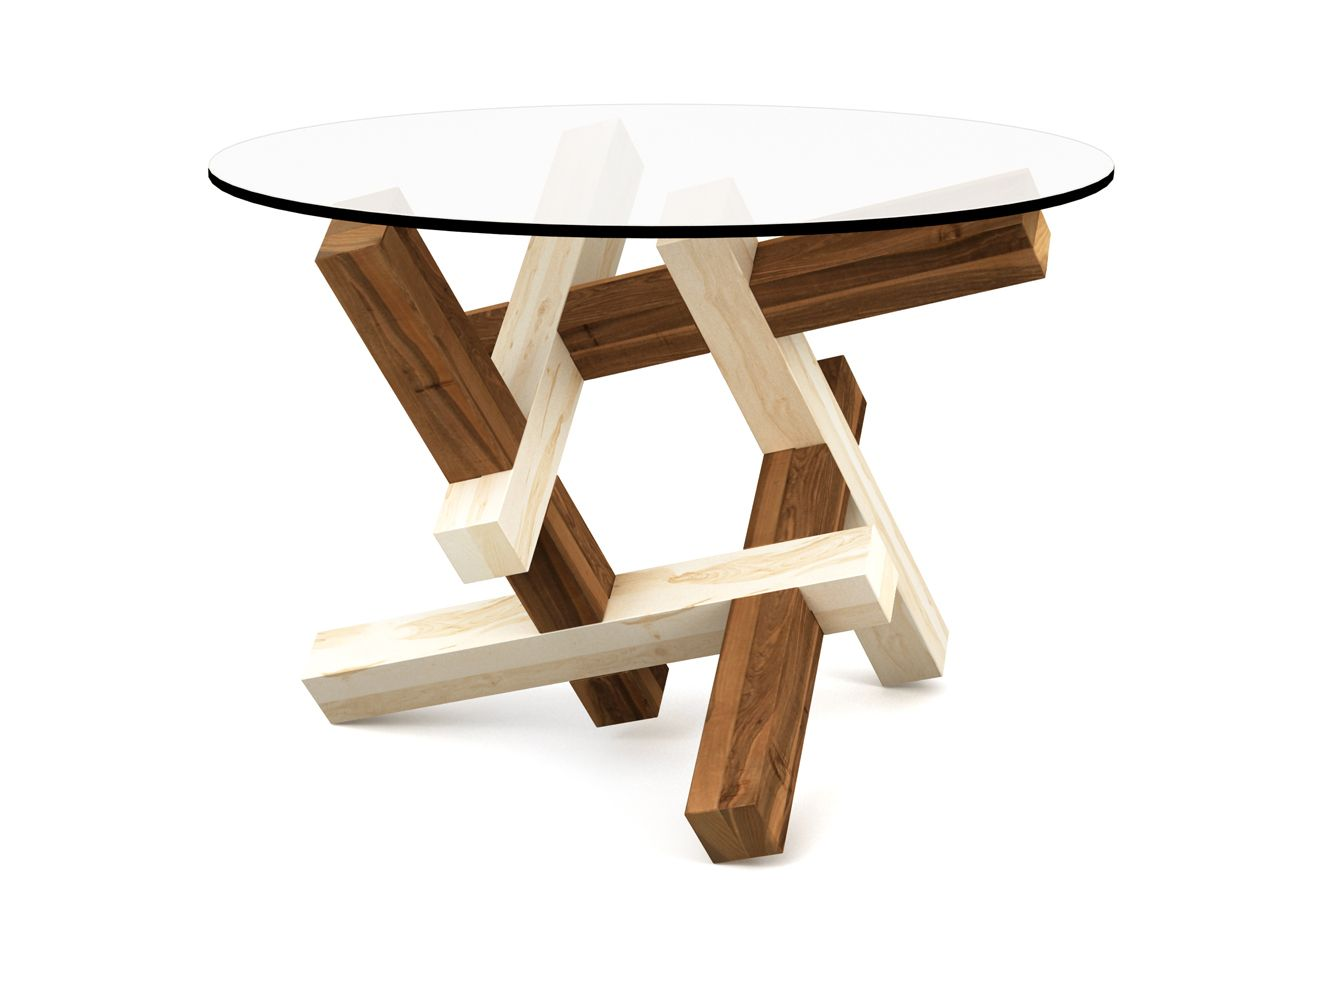 2x3 Round Wooden Puzzle Coffee Table Free Shipping To Eu Table Basse Design Table Basse Bois Table Basse Ronde En Verre